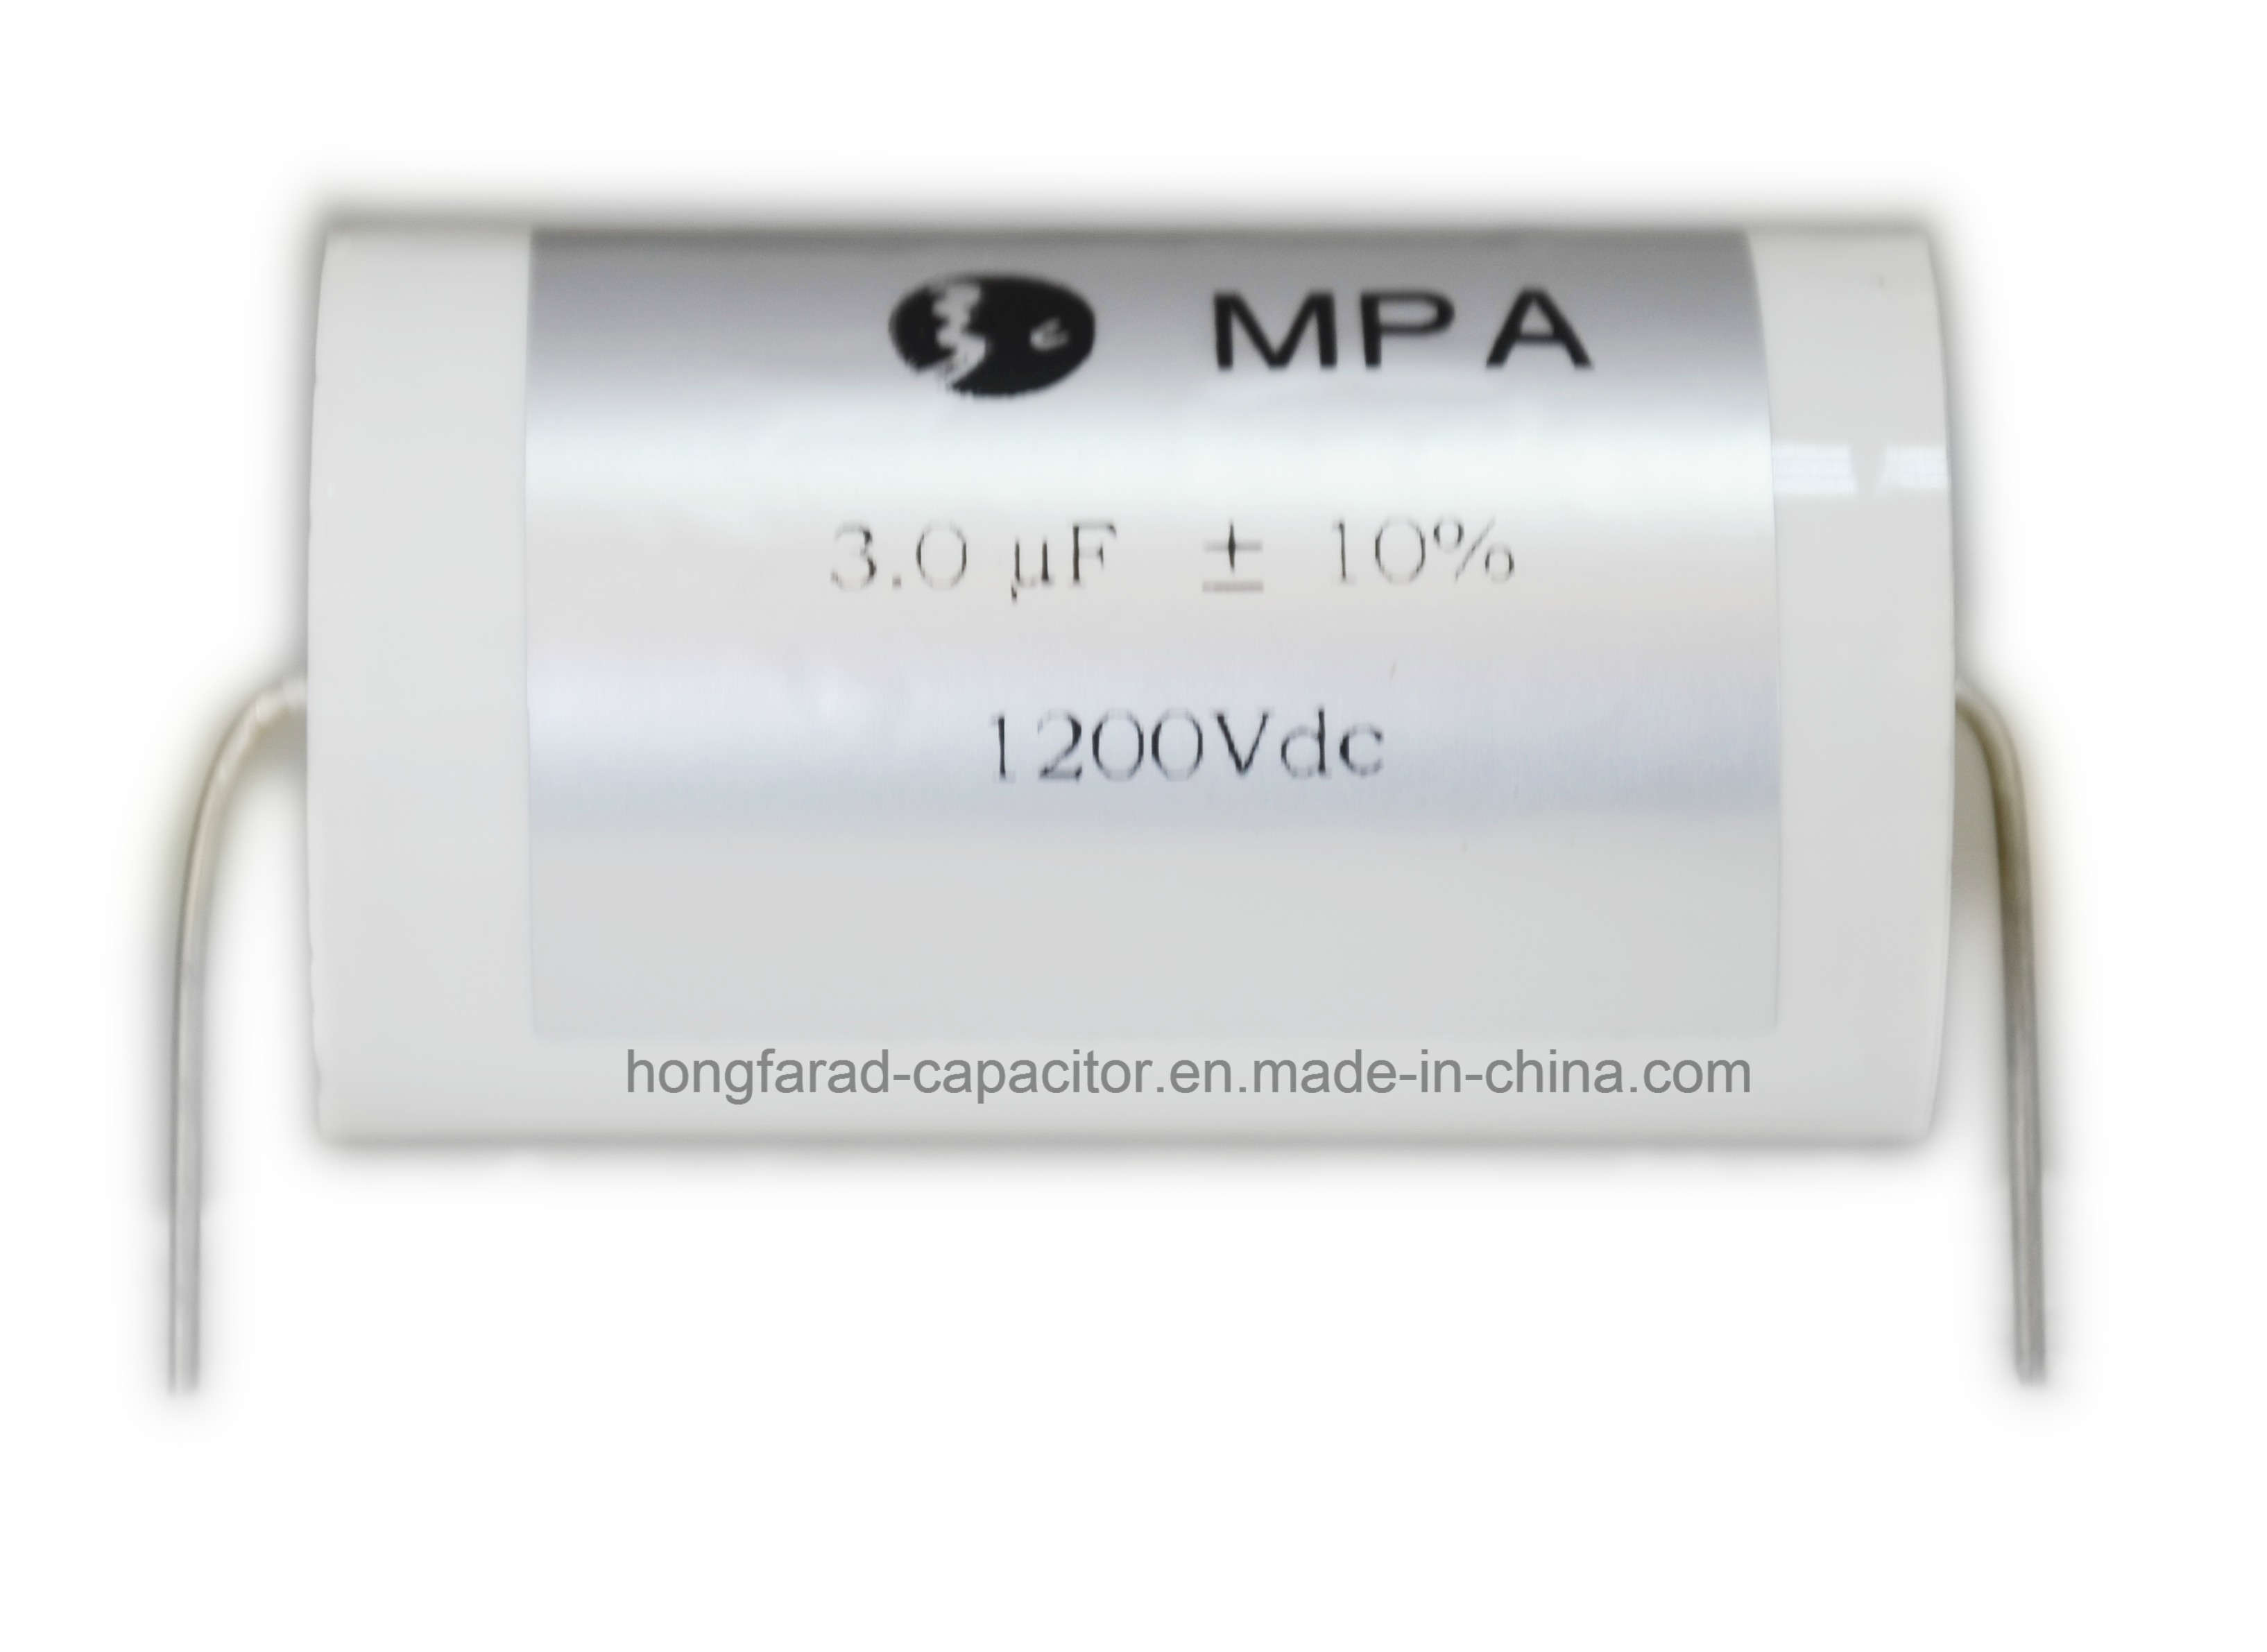 Metallized Polypropylene Film Capacitor for Louder Speaker Cbb20 MPa Axial